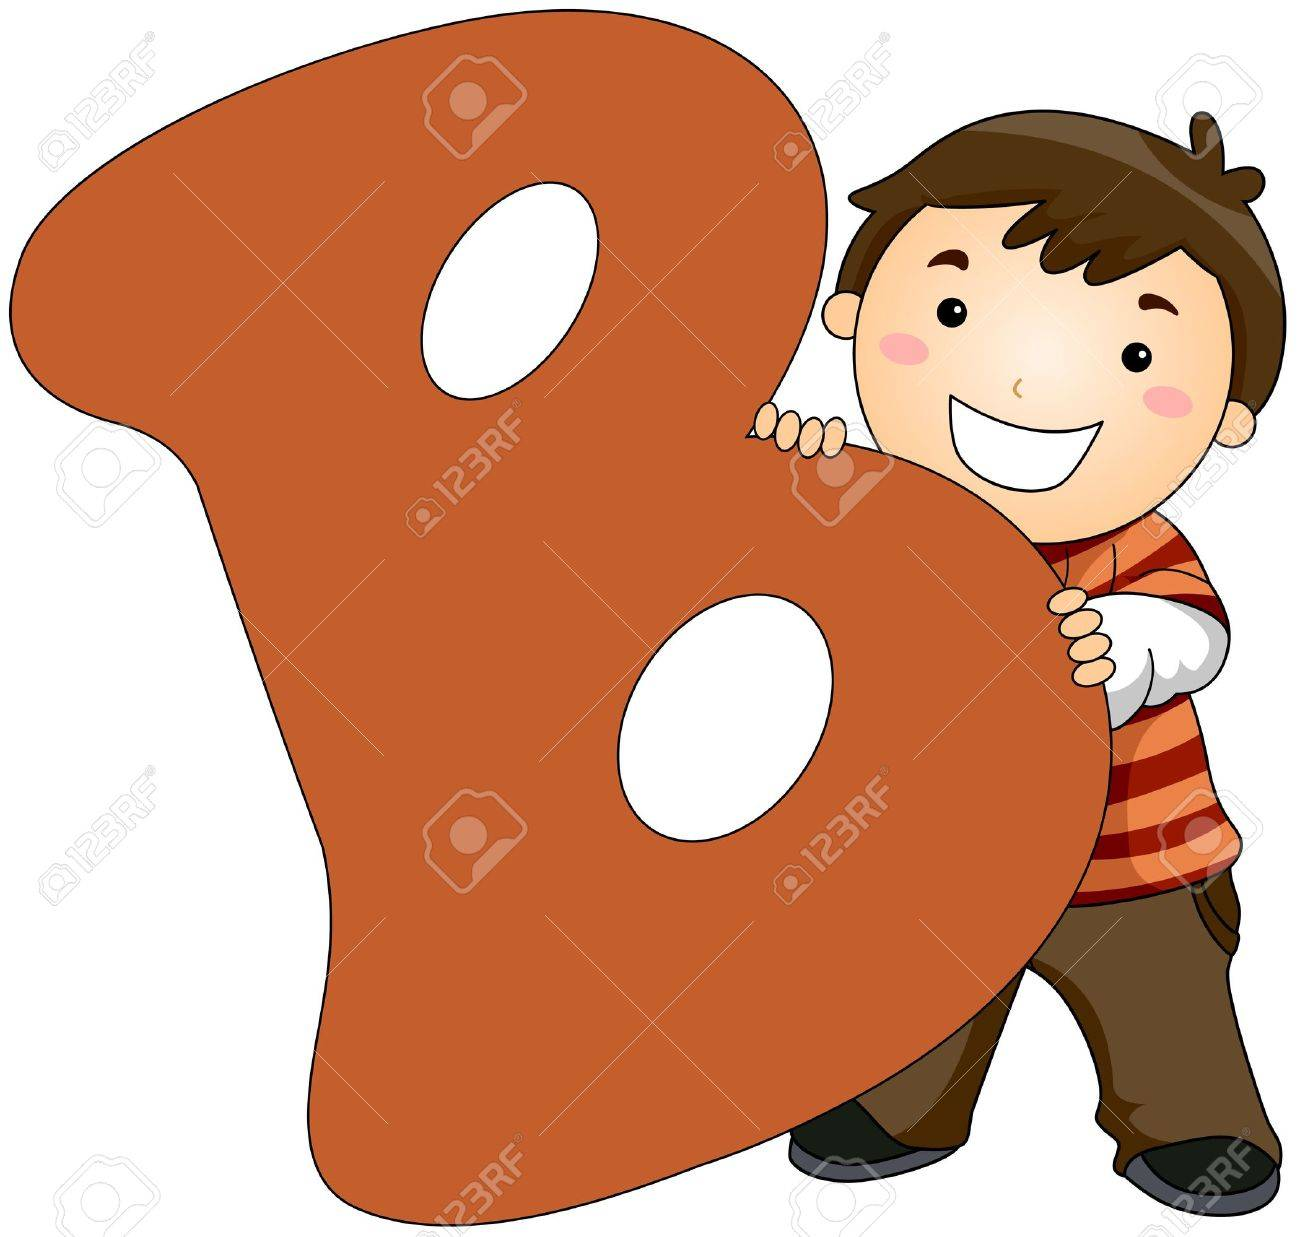 Illustration of a Little Boy Hiding Behind a Letter B Stock Photo - 8427150